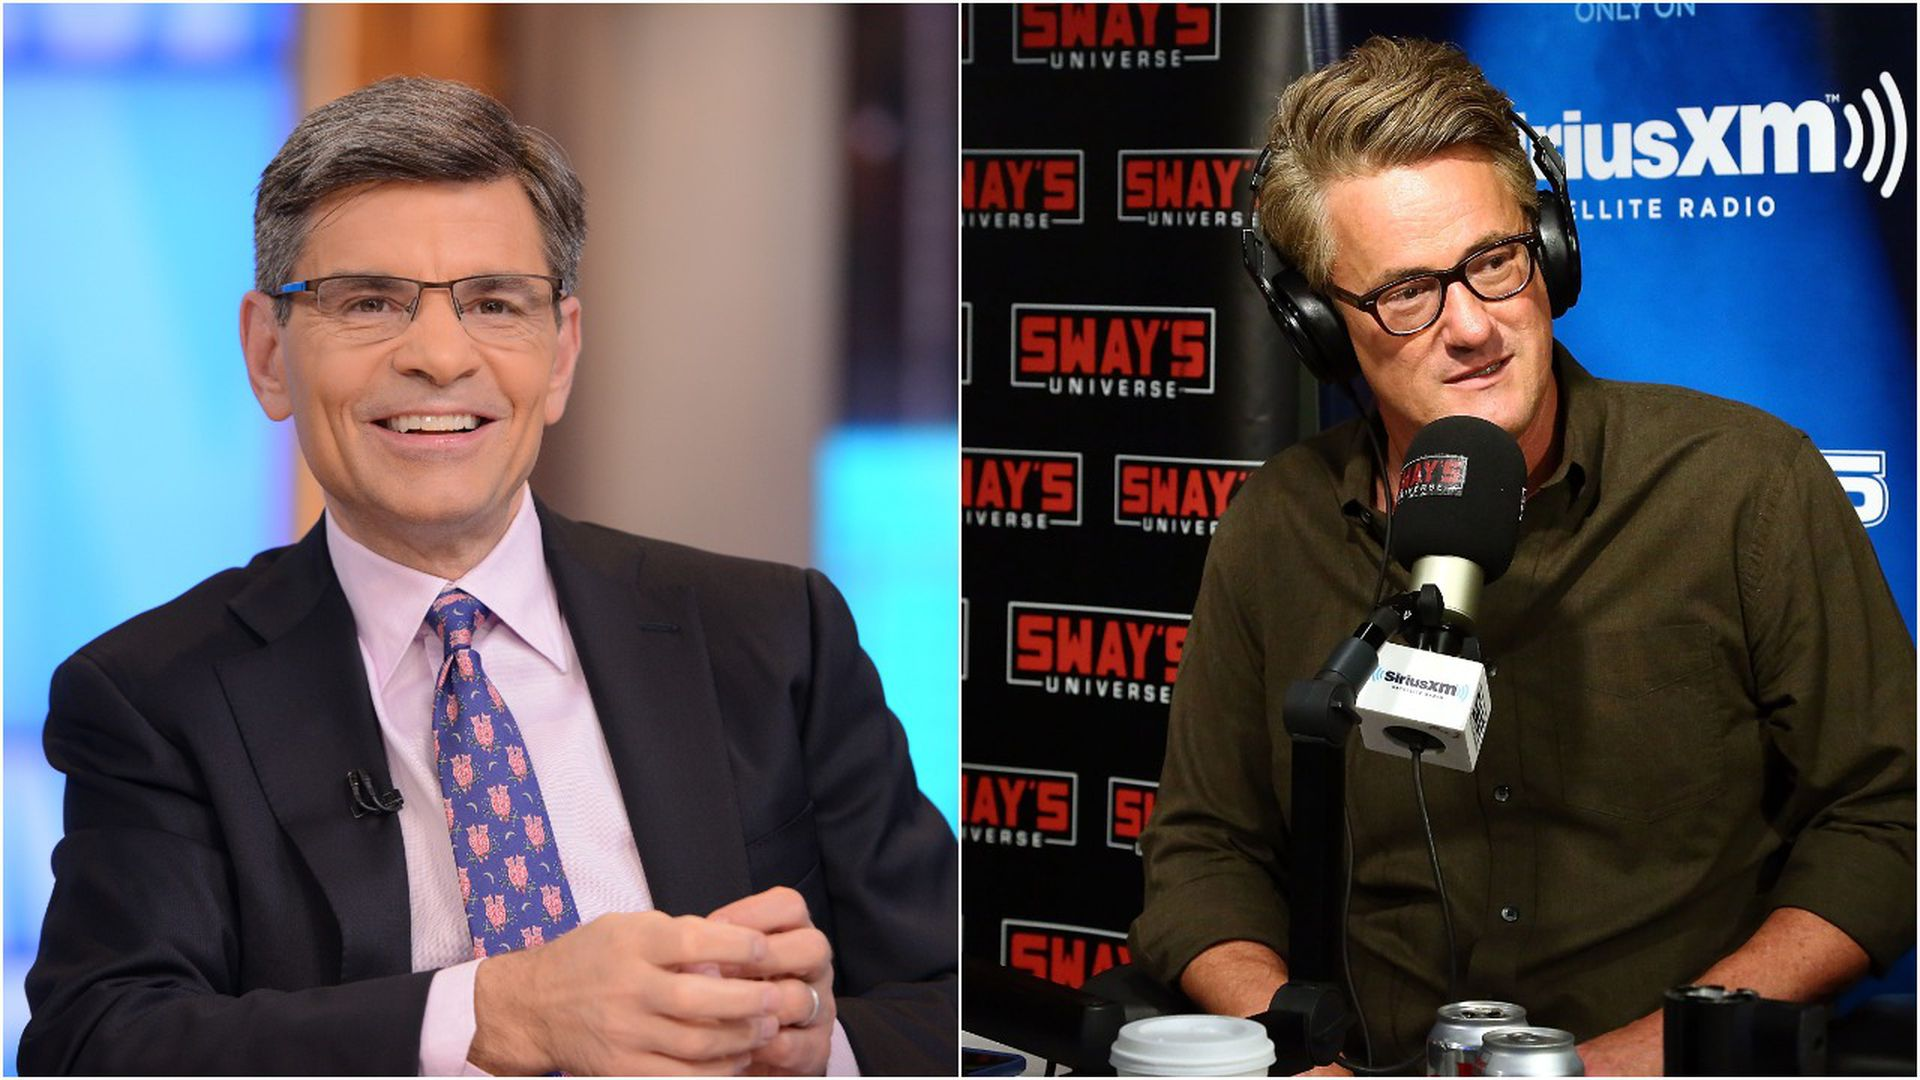 George Stephanopoulos of ABC News and Joe Scarborough of MSNBC.